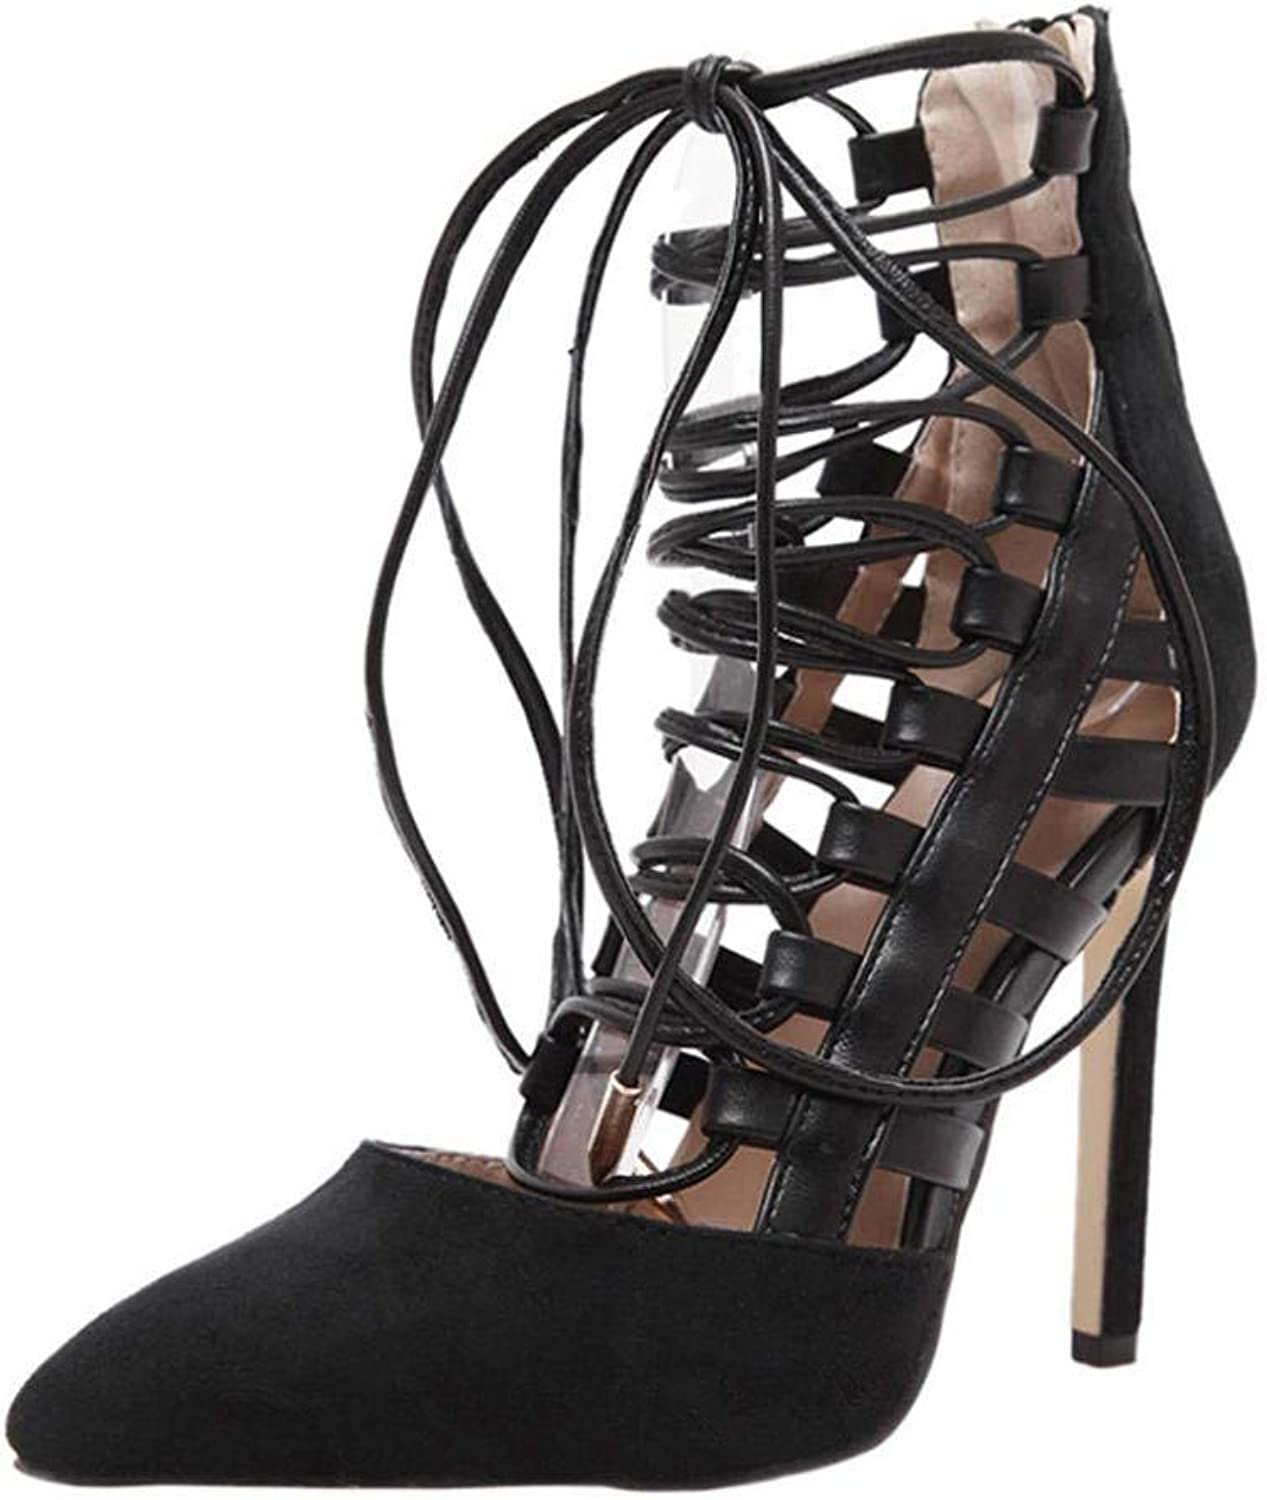 Lady shoes Womens's High Heels Strappy Lace Up Stiletto Fashion Women Sandals Summer Boom shoes Wedges Weave Middle Heel Sandals